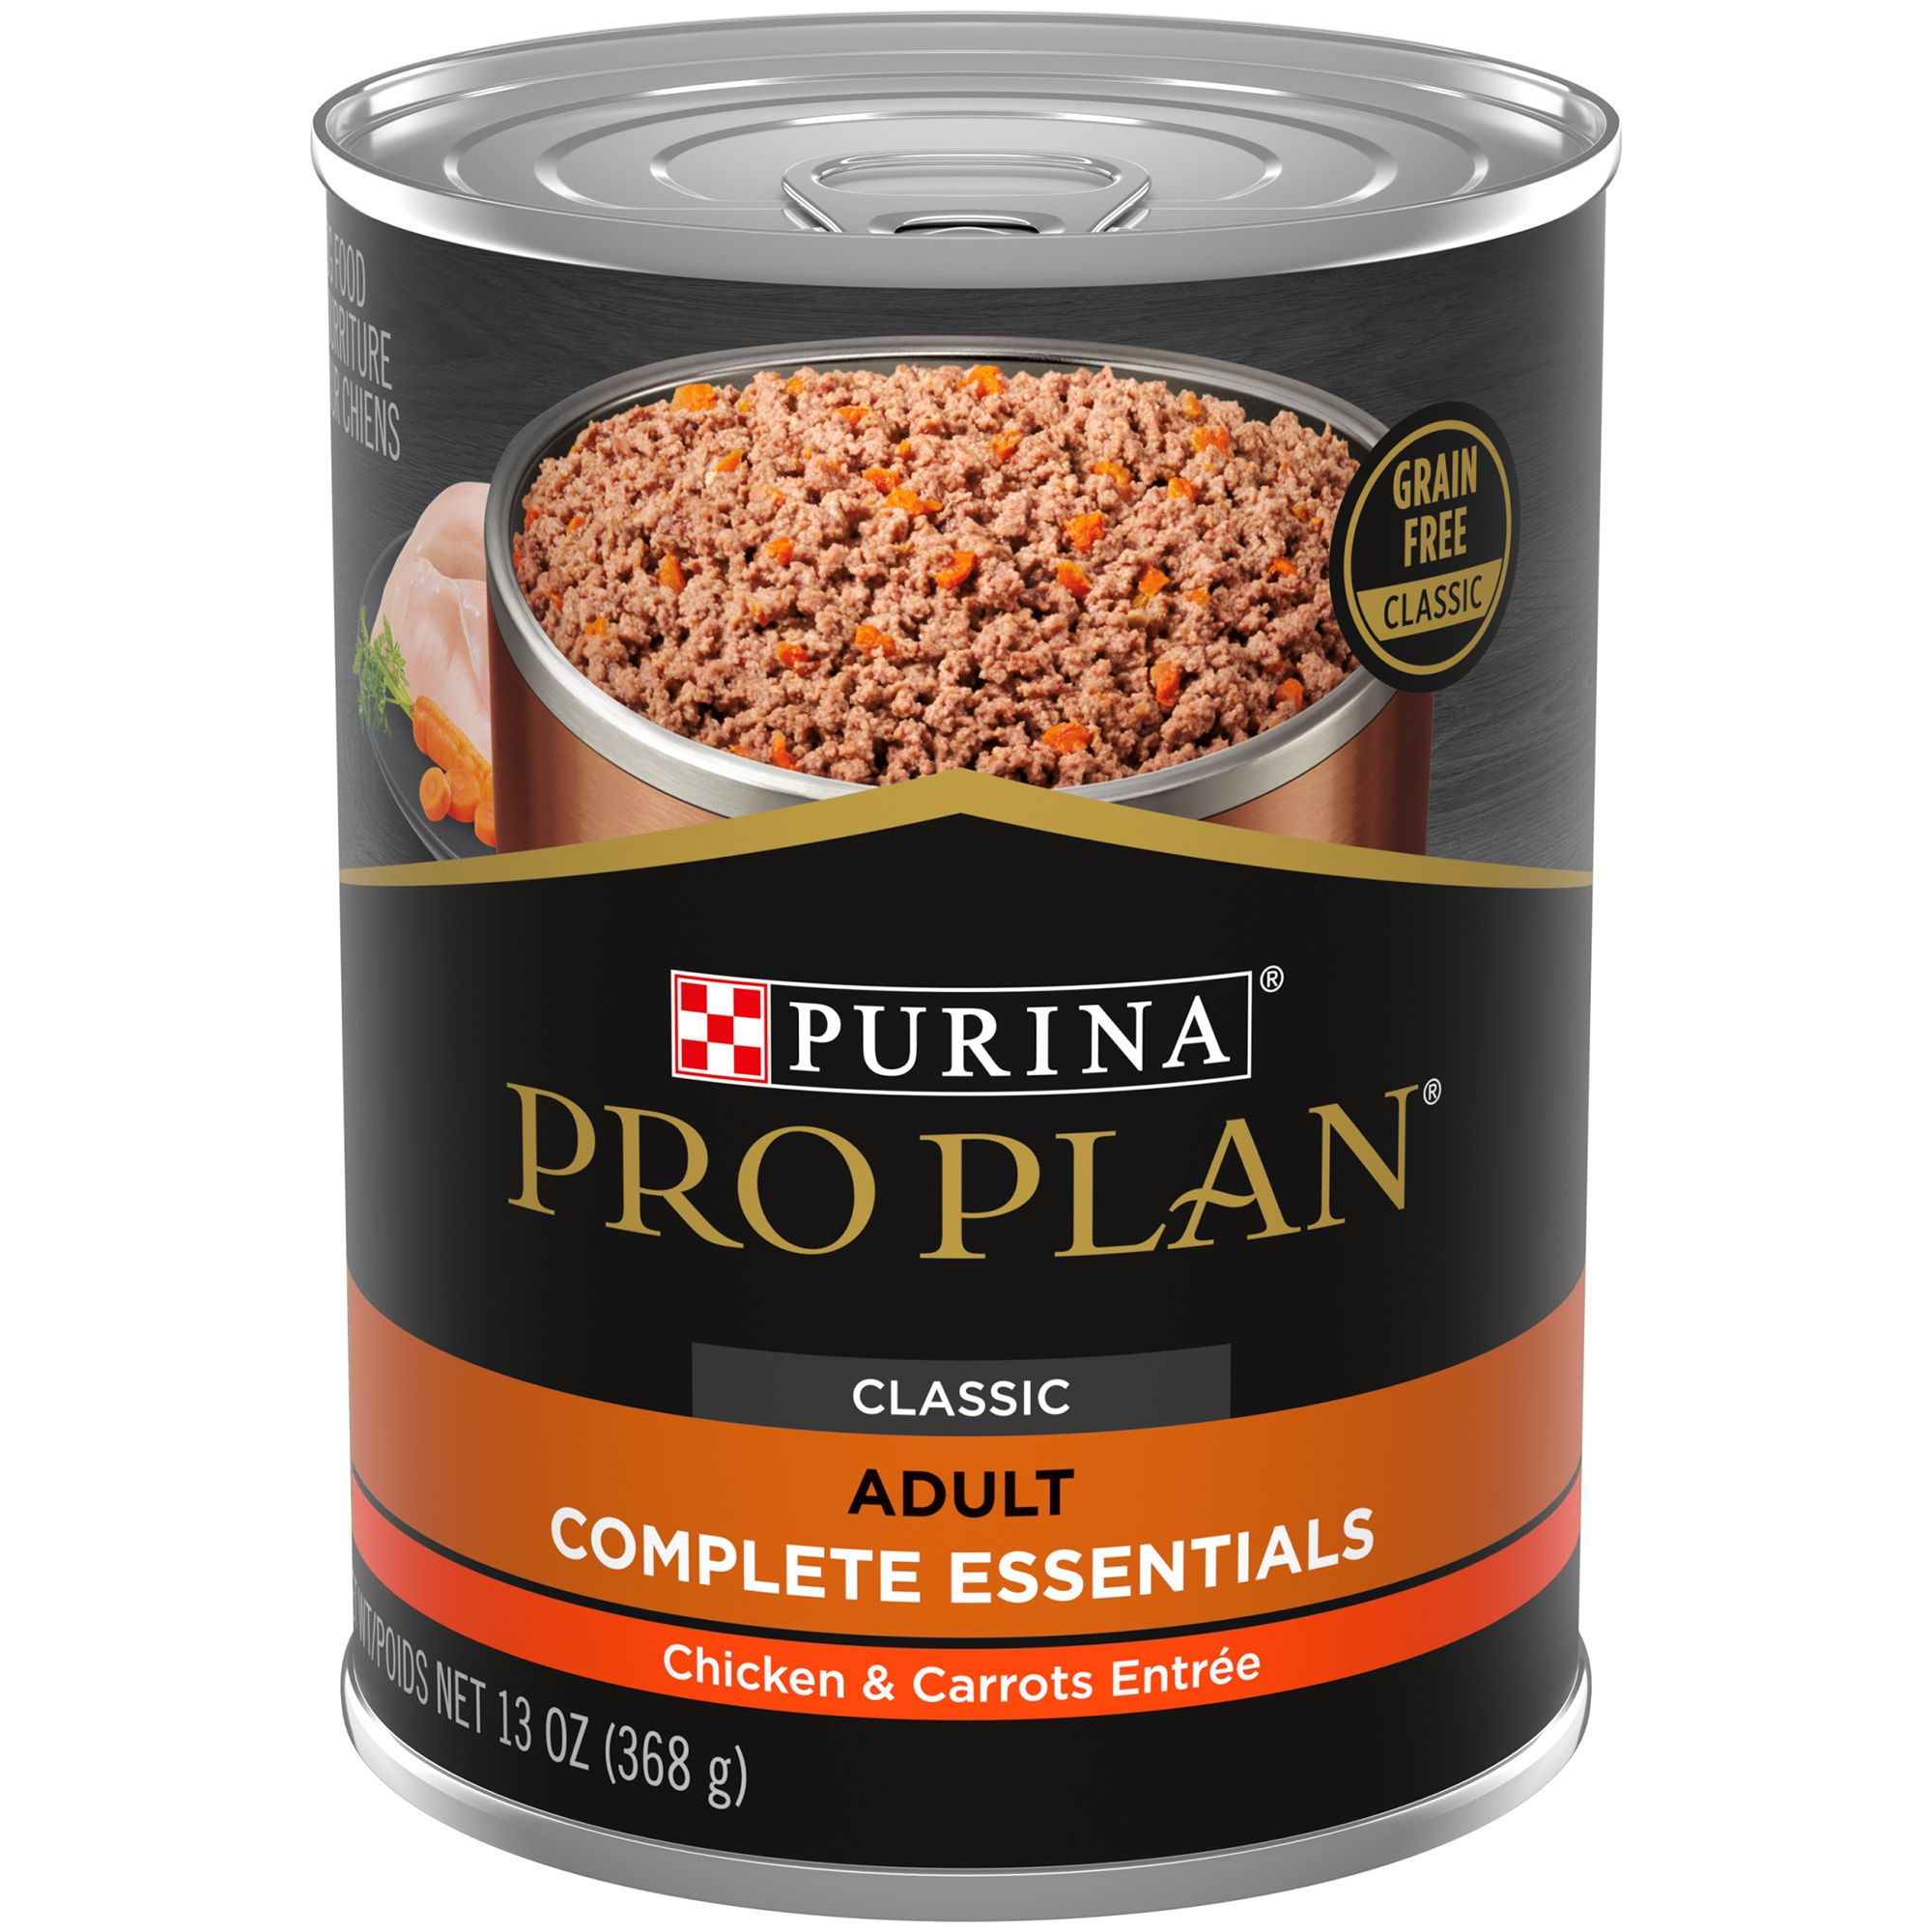 Purina Pro Plan Savor Classic Adult Dog Food - Natural, Grain Free, Chicken and Carrot size: 13 Oz, Ground 5191888